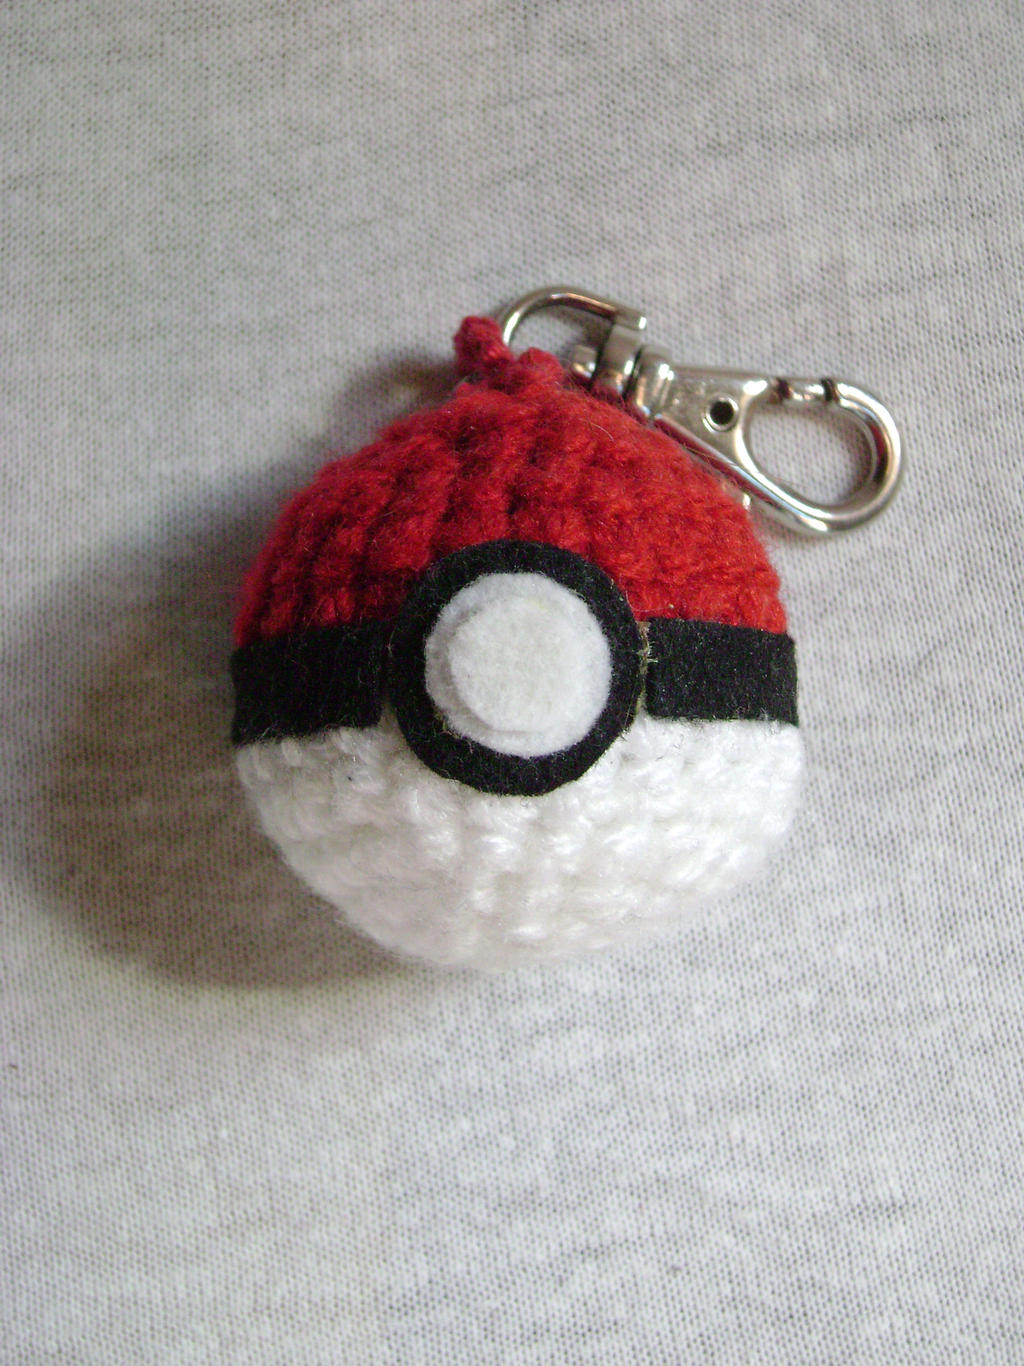 Crochet Pokeball keychain by xXShilowXx on DeviantArt